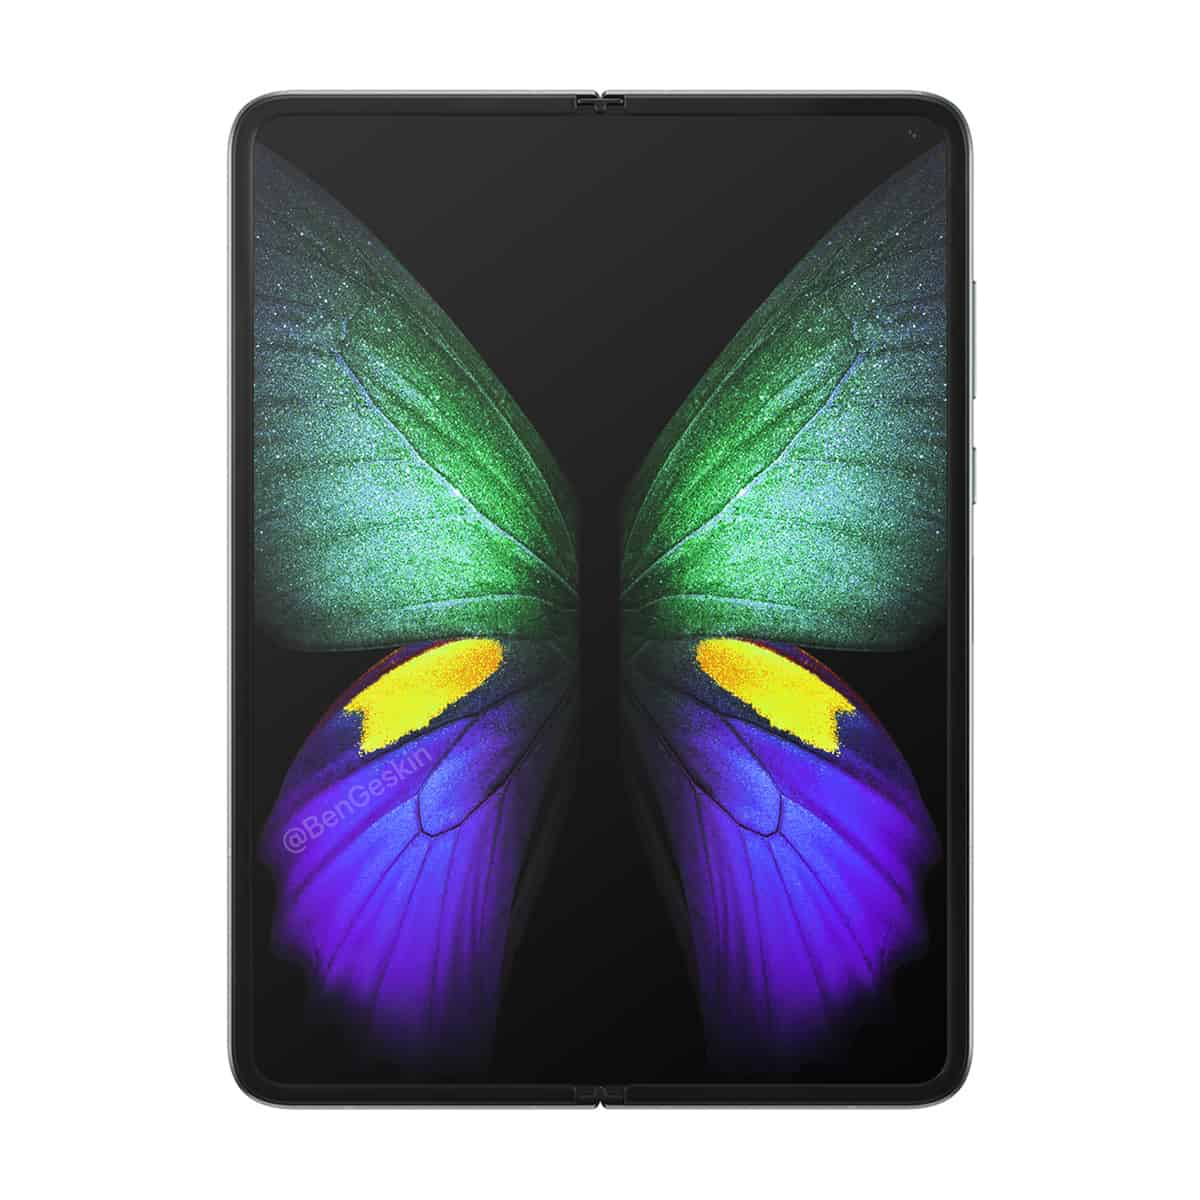 Galaxy Fold 2 may come with a new form of S Pen